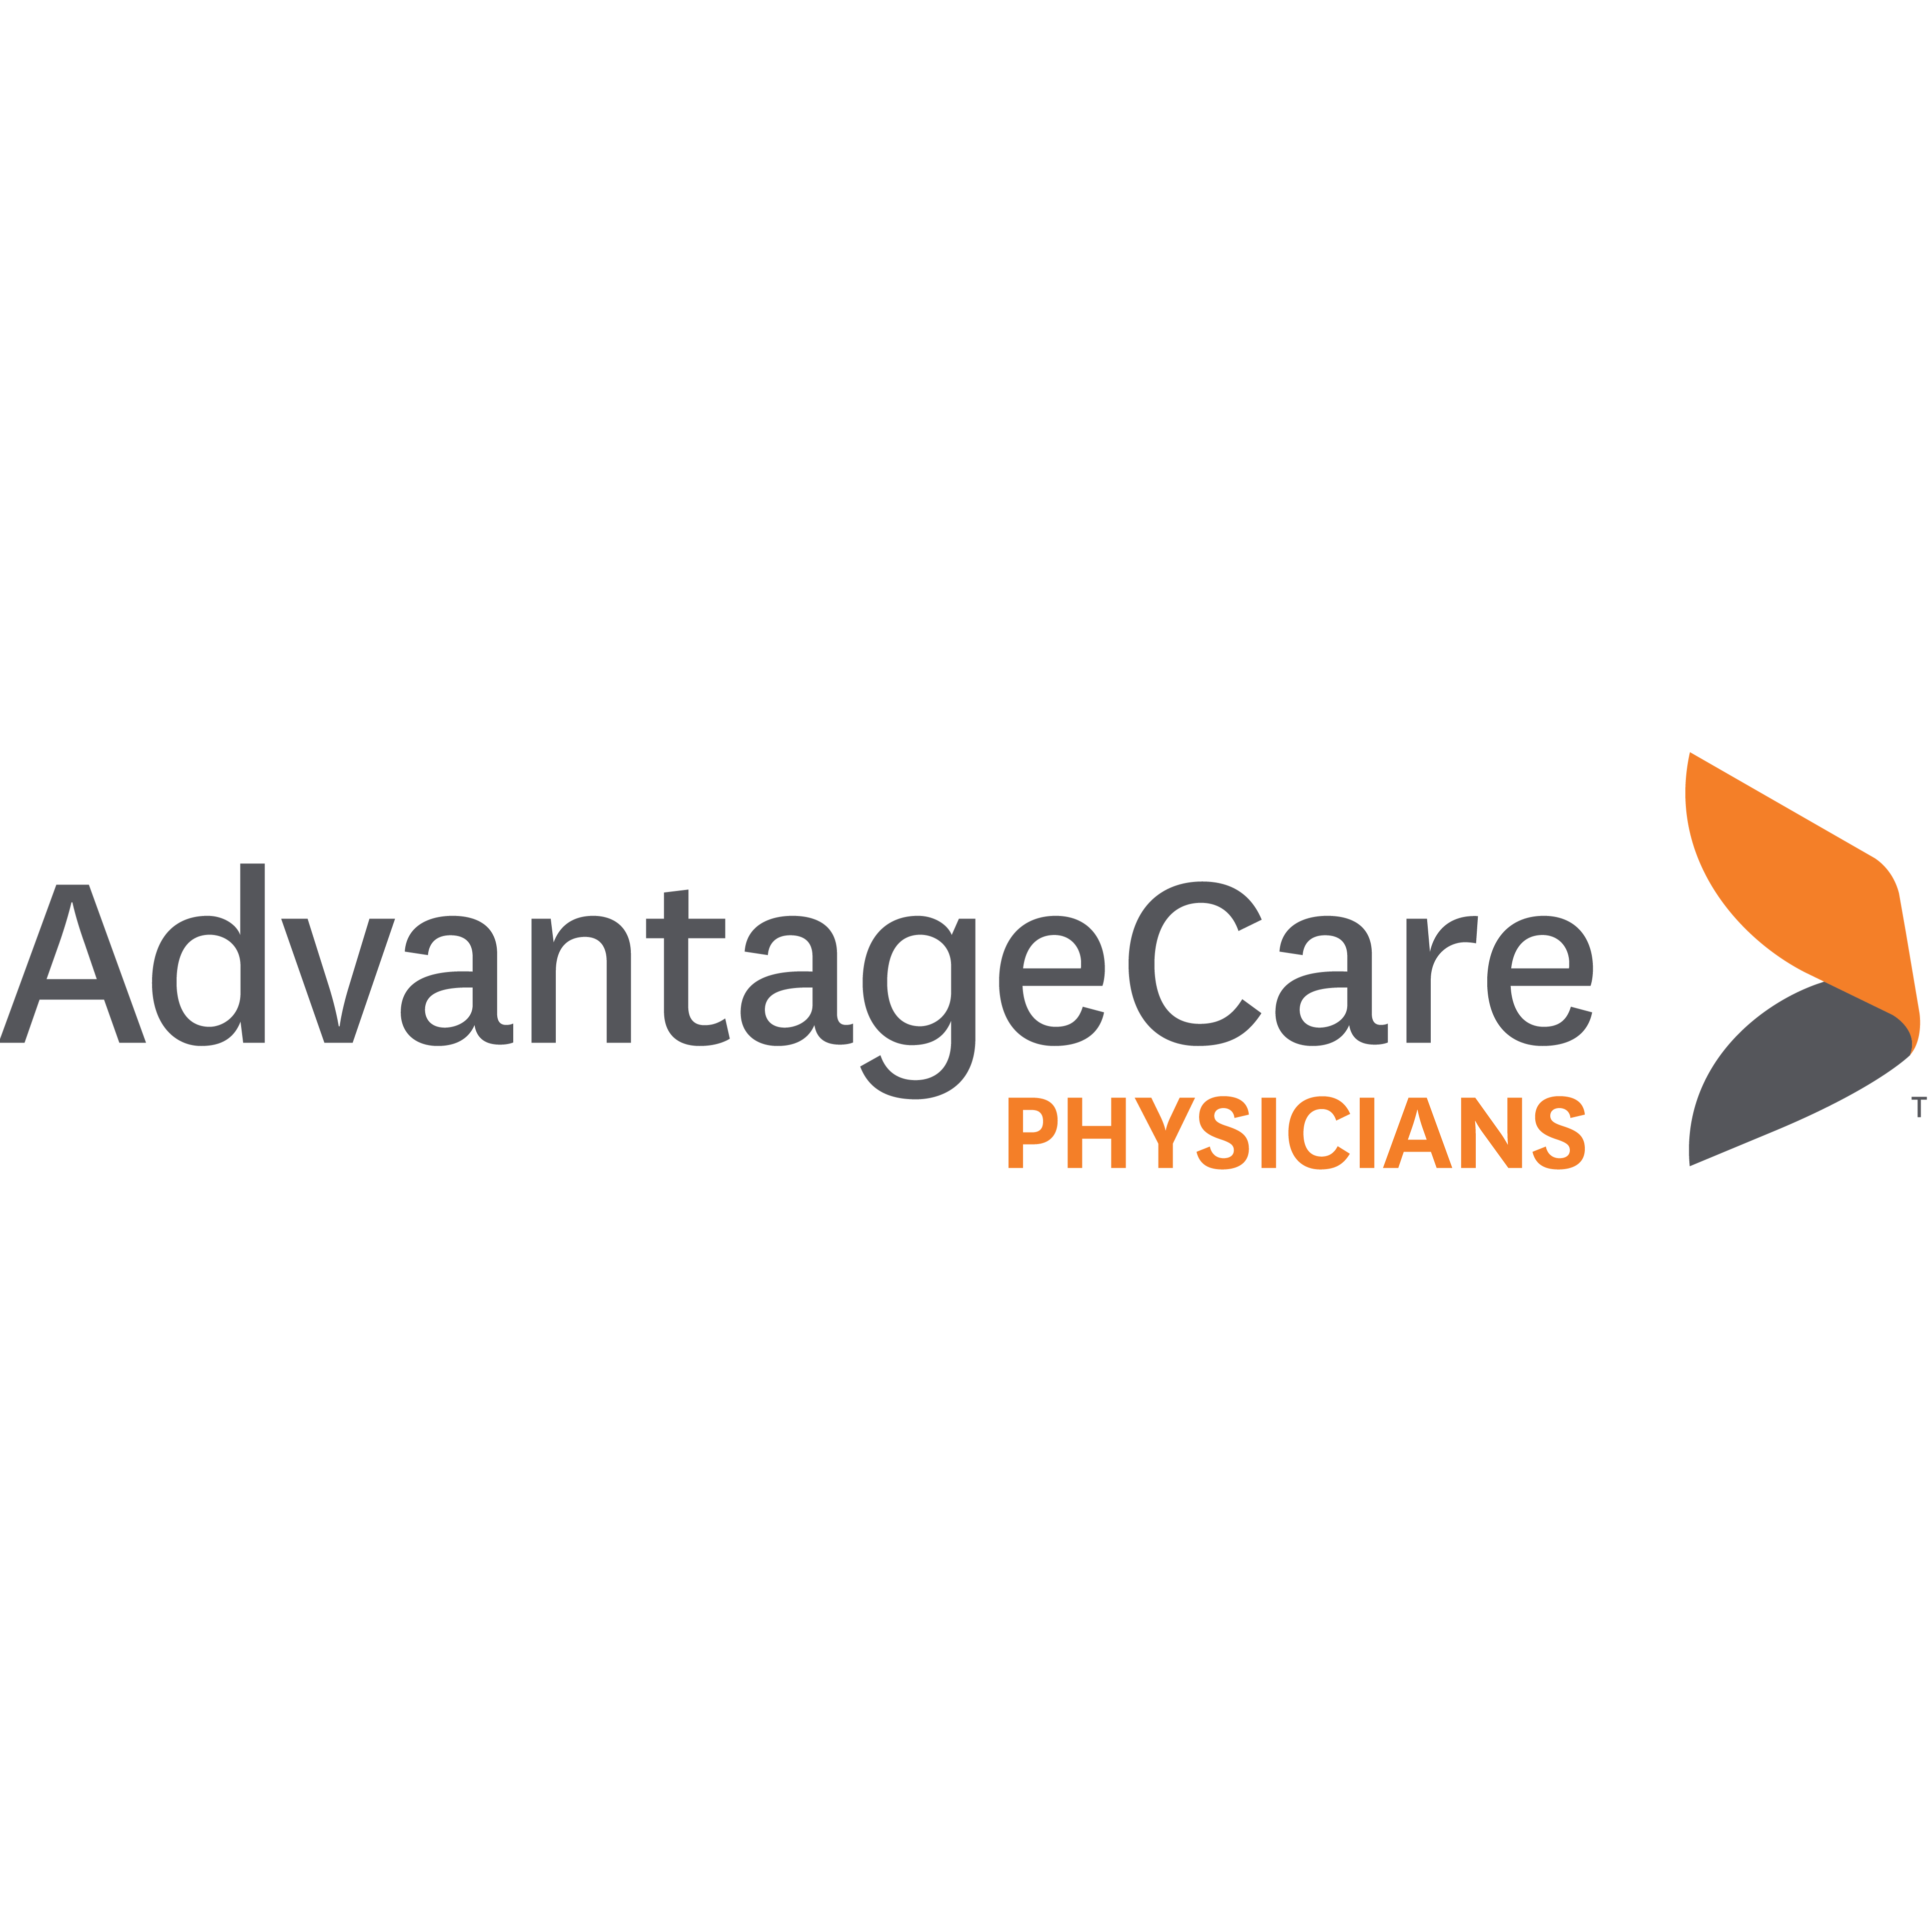 AdvantageCare Physicians - Hicksville Medical Office